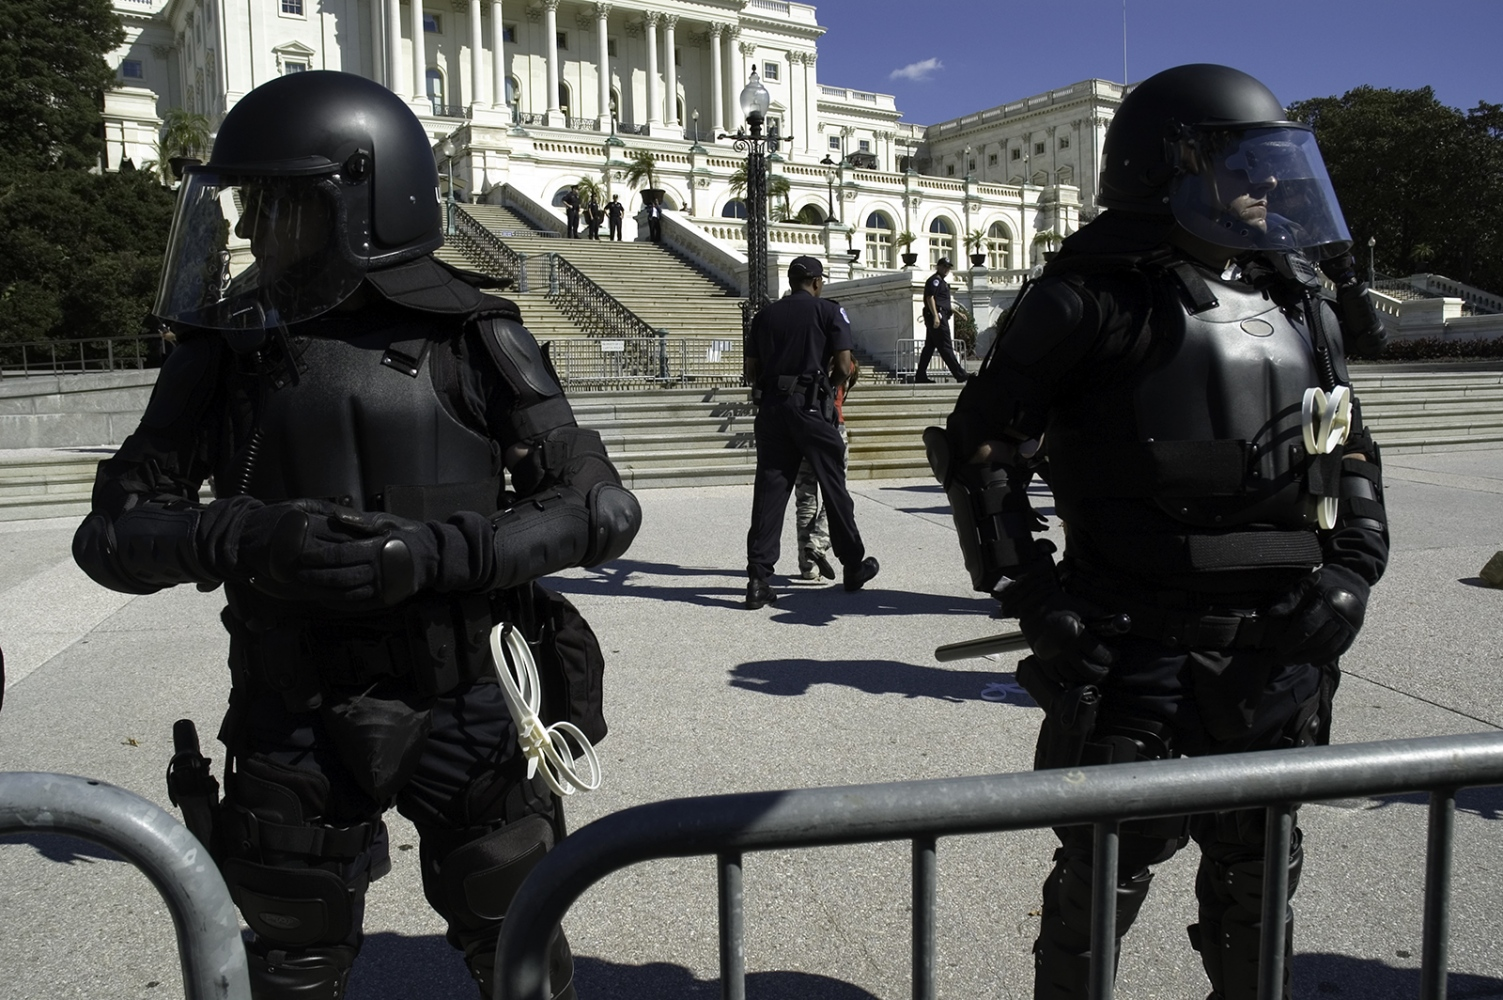 Art and Documentary Photography - Loading _robo_cops_at_capitol.jpg